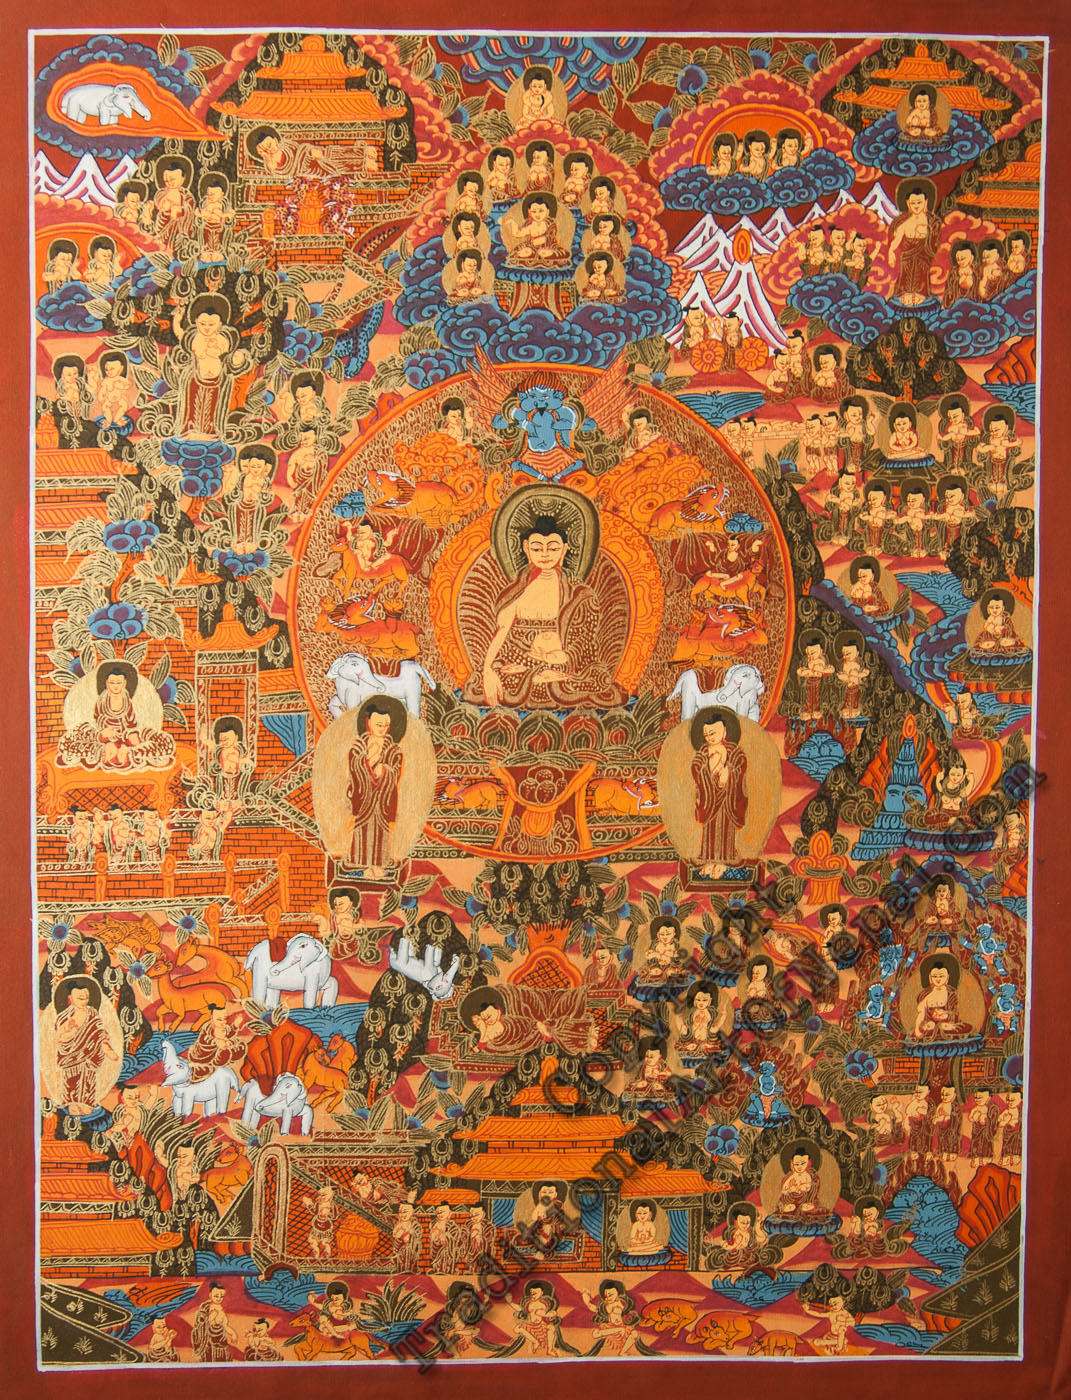 Life of Shakyamuni Buddha : Buddhist History 101 - Ep. 62 of the Bob Thurman Podcast image by Thangka Painting School, Used with permission, All Rights Reserved via www.traditionalartofnepal.com.